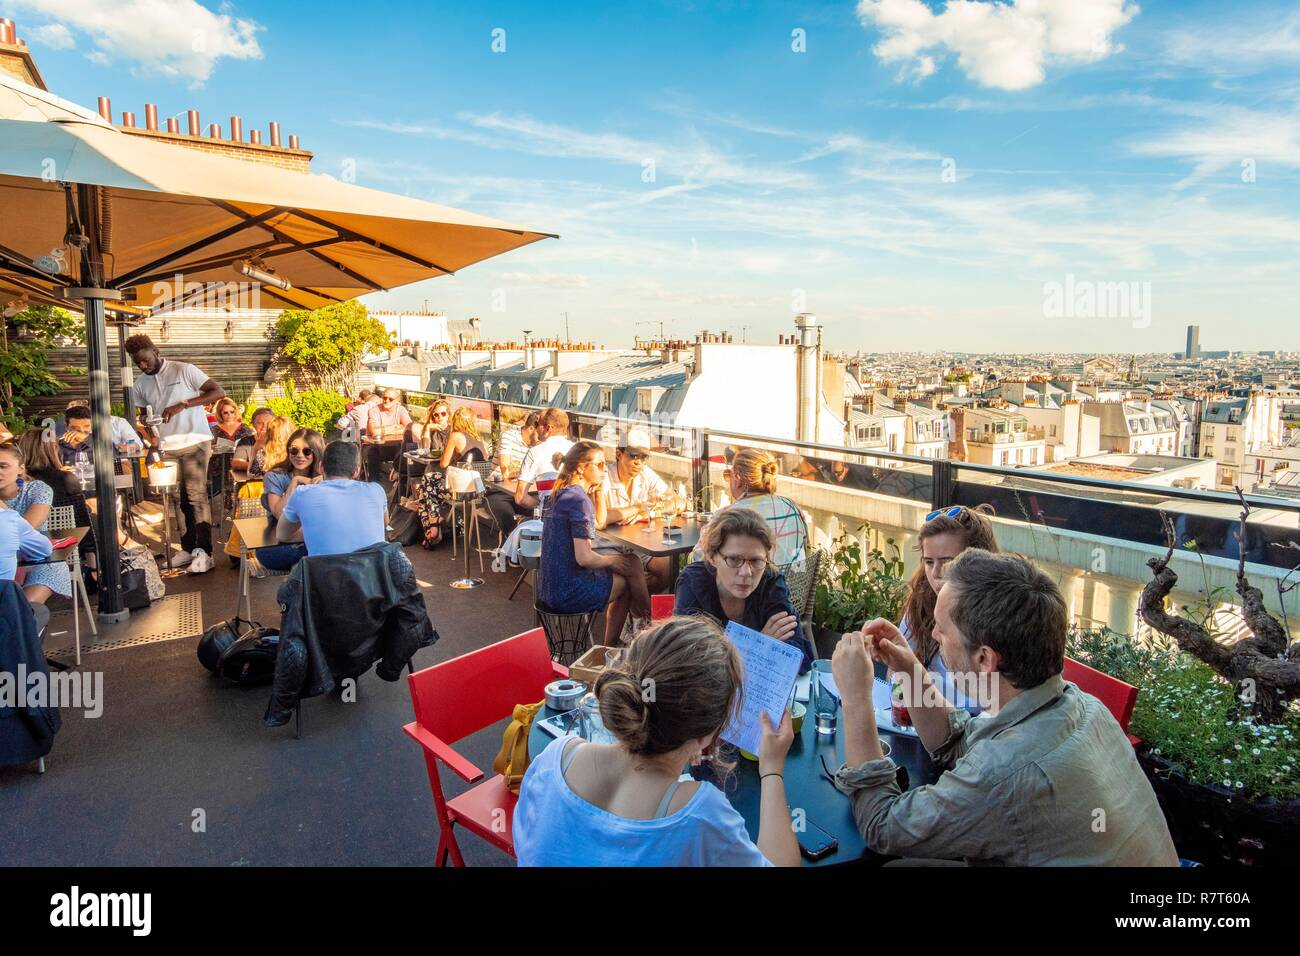 Terrasse Hotel Paris France Paris The Terrass Hotel The Panoramic Terrace On The Top